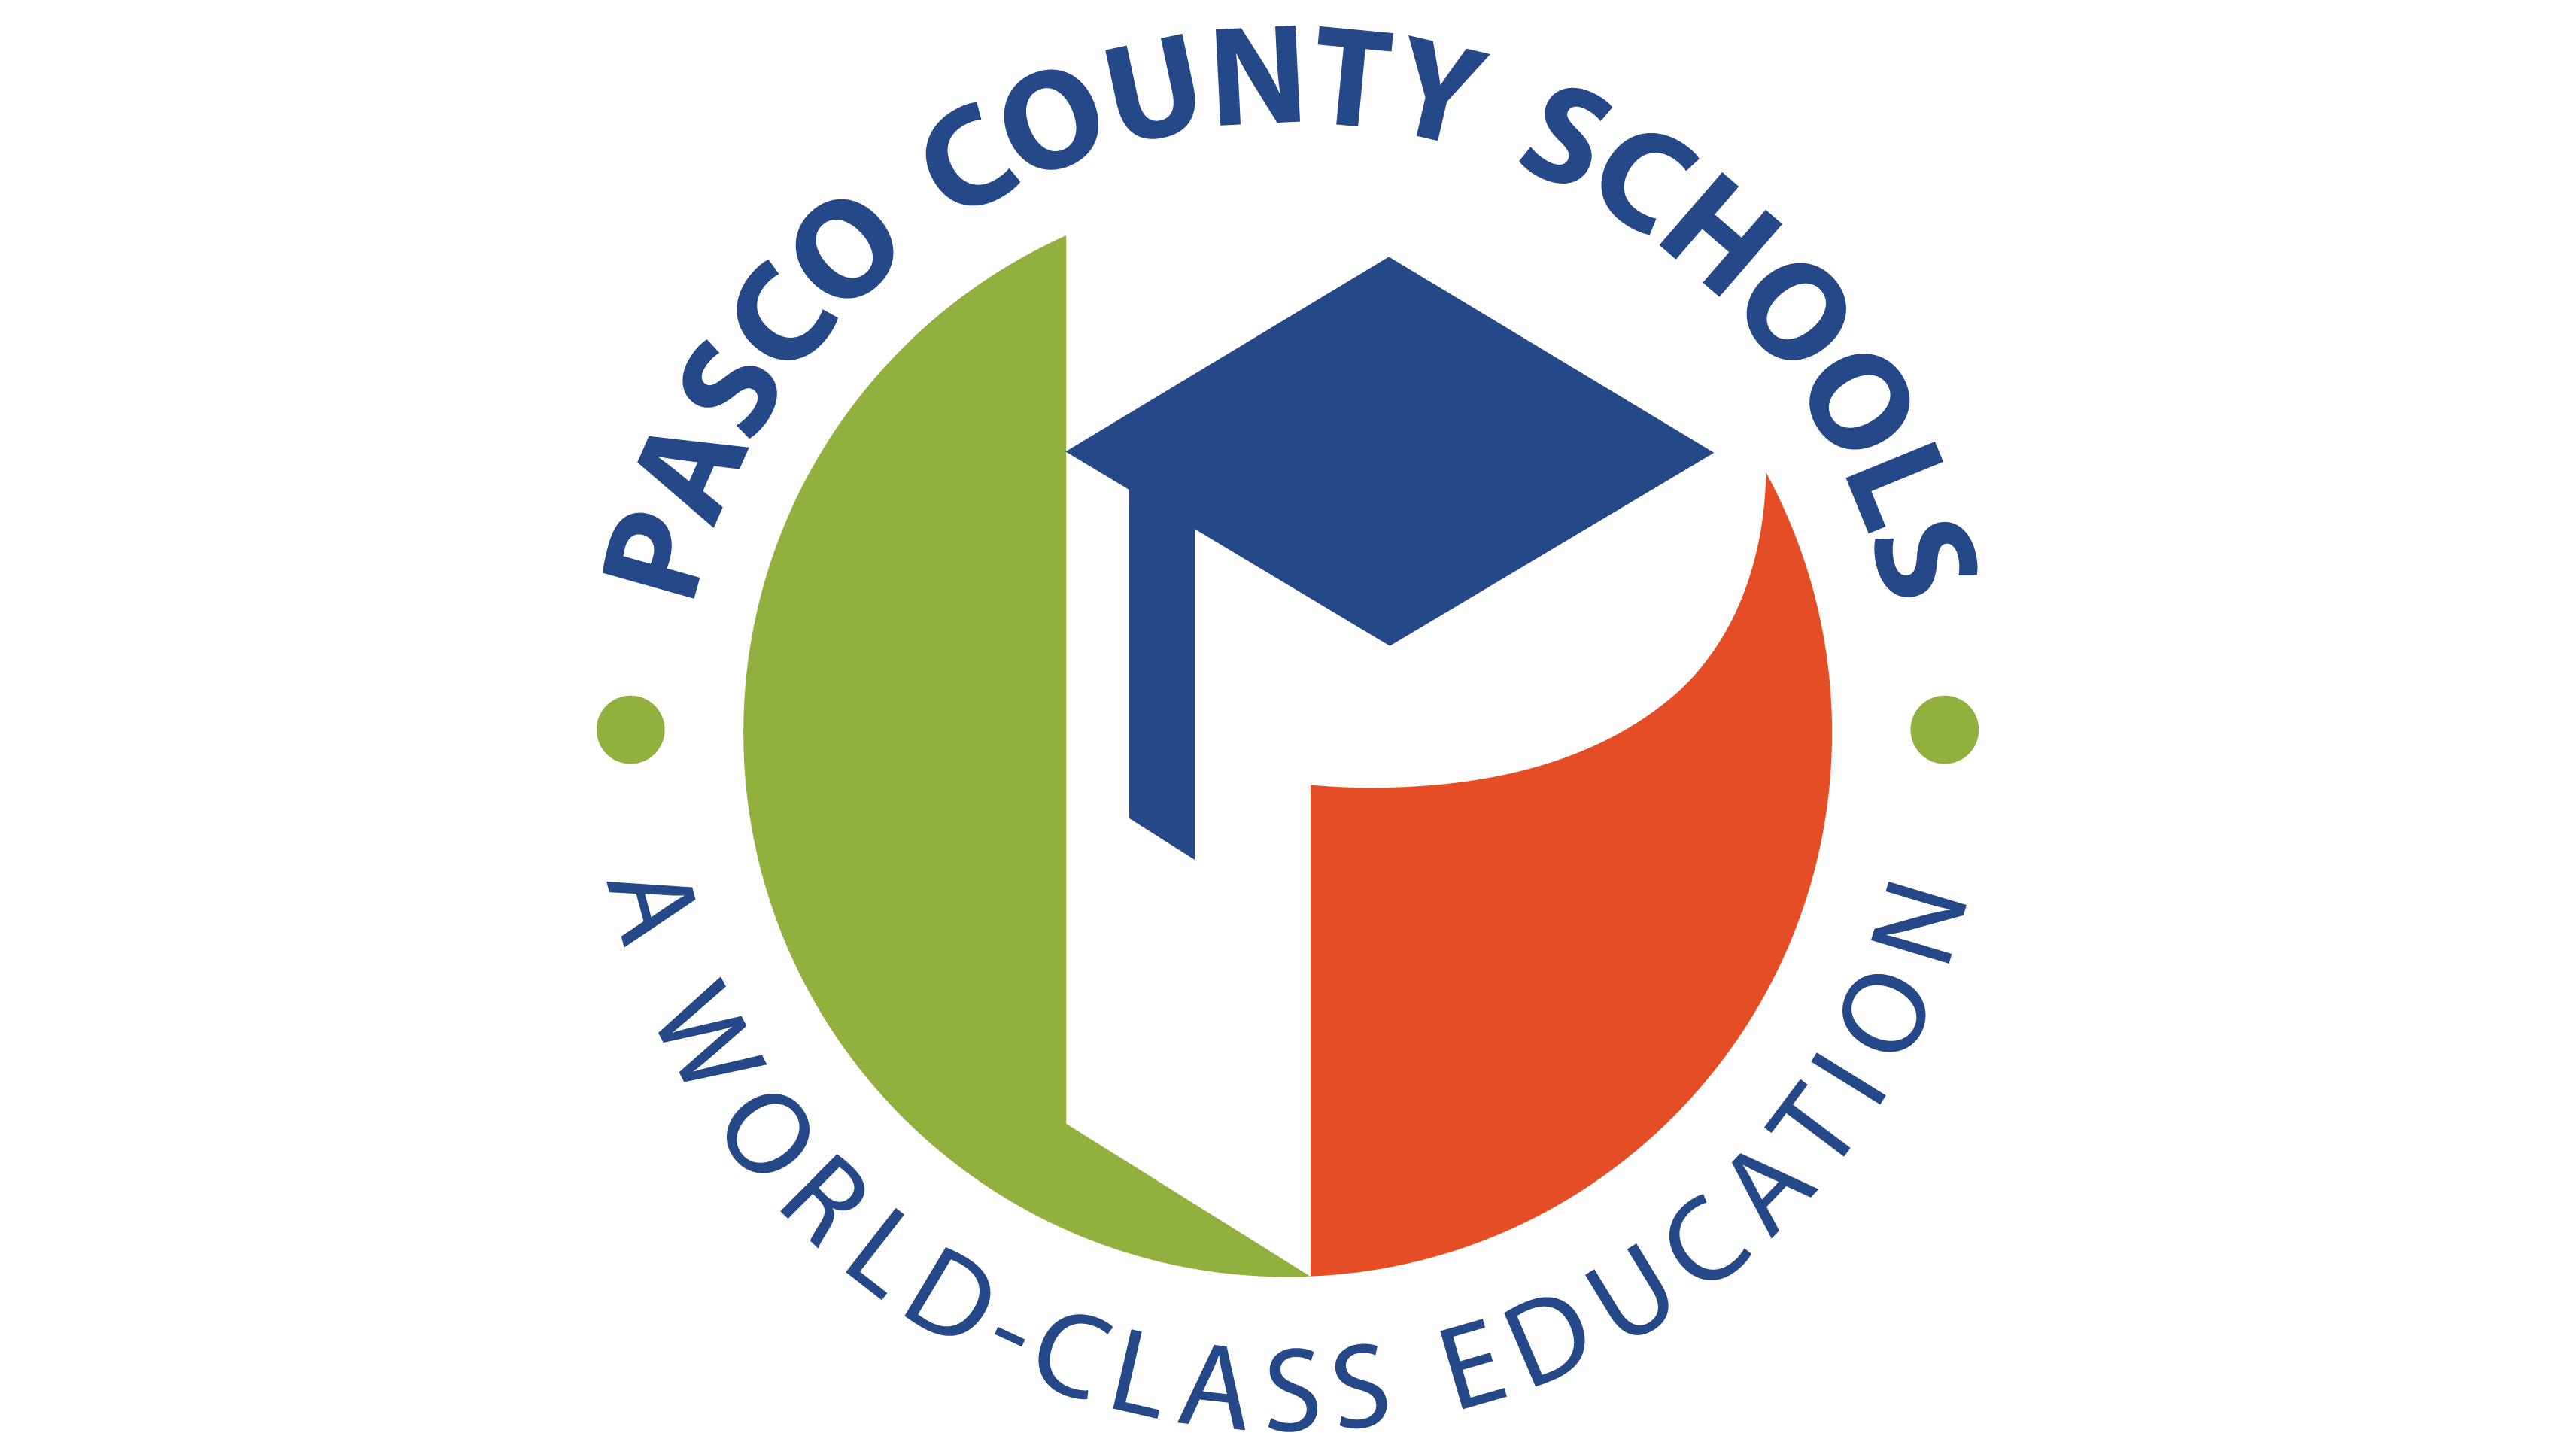 the Pasco County School District